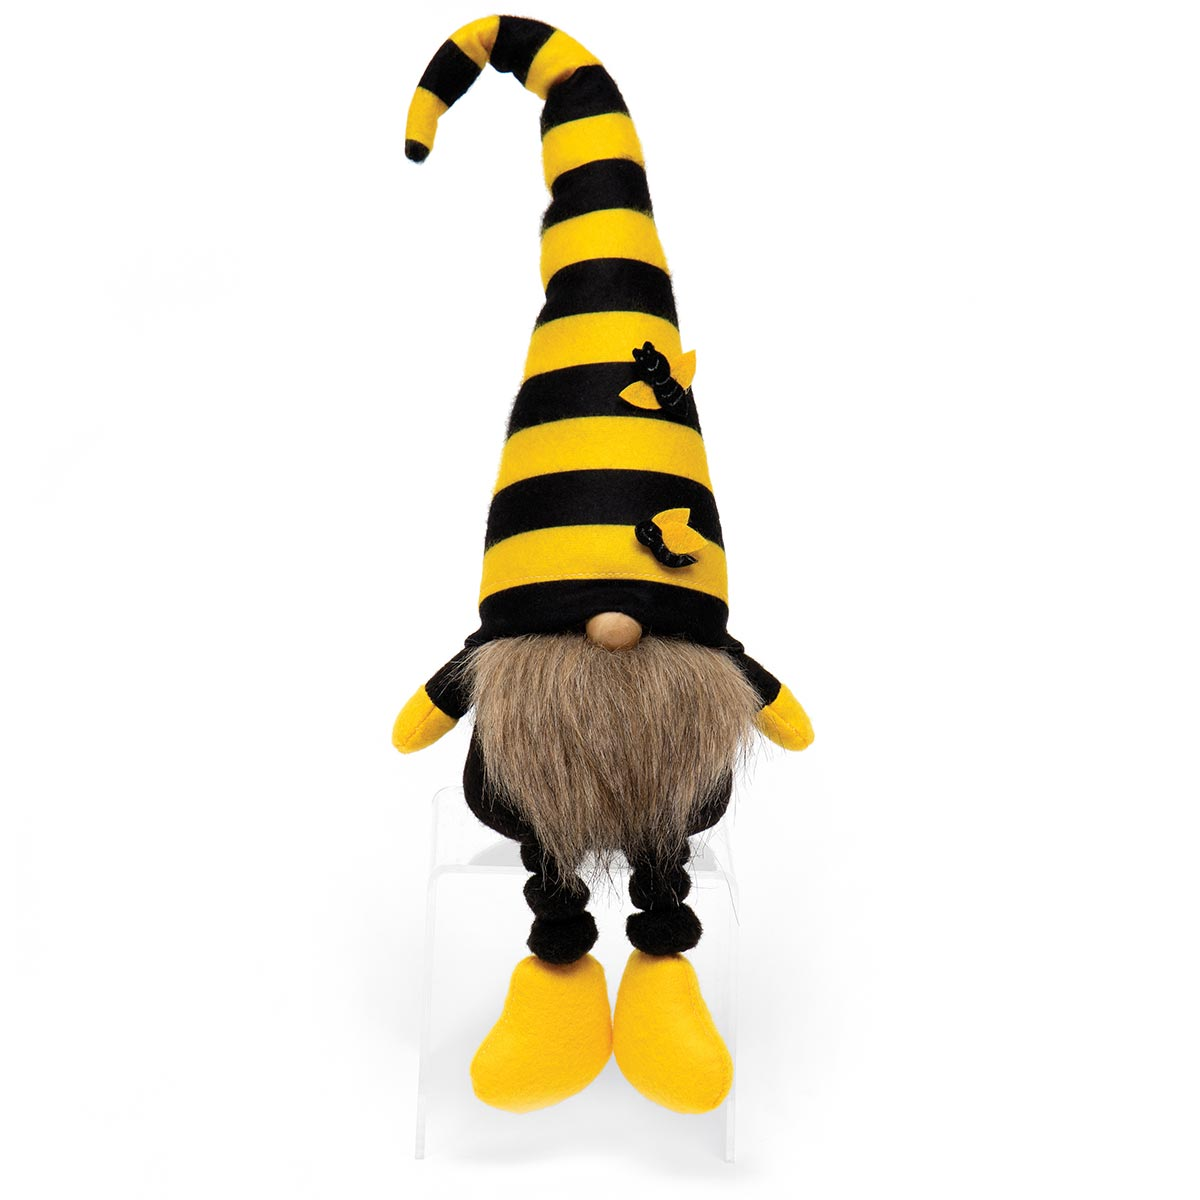 HUMBLE BEE GNOME WITH YELLOW/BLACK STRIPED BEE HAT, WOOD NOSE,